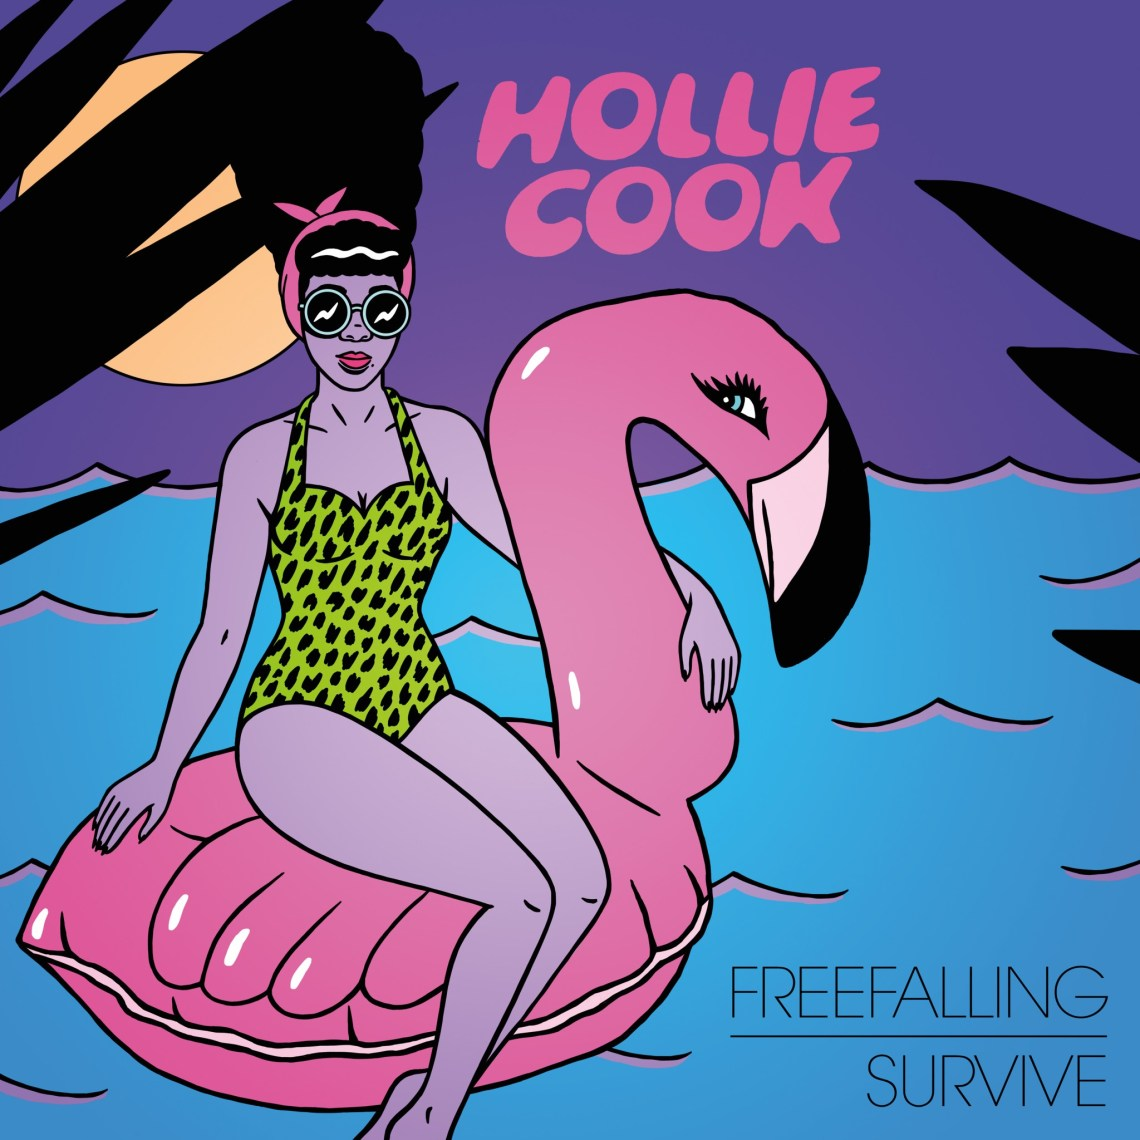 Hollie Cook Freefalling Survive